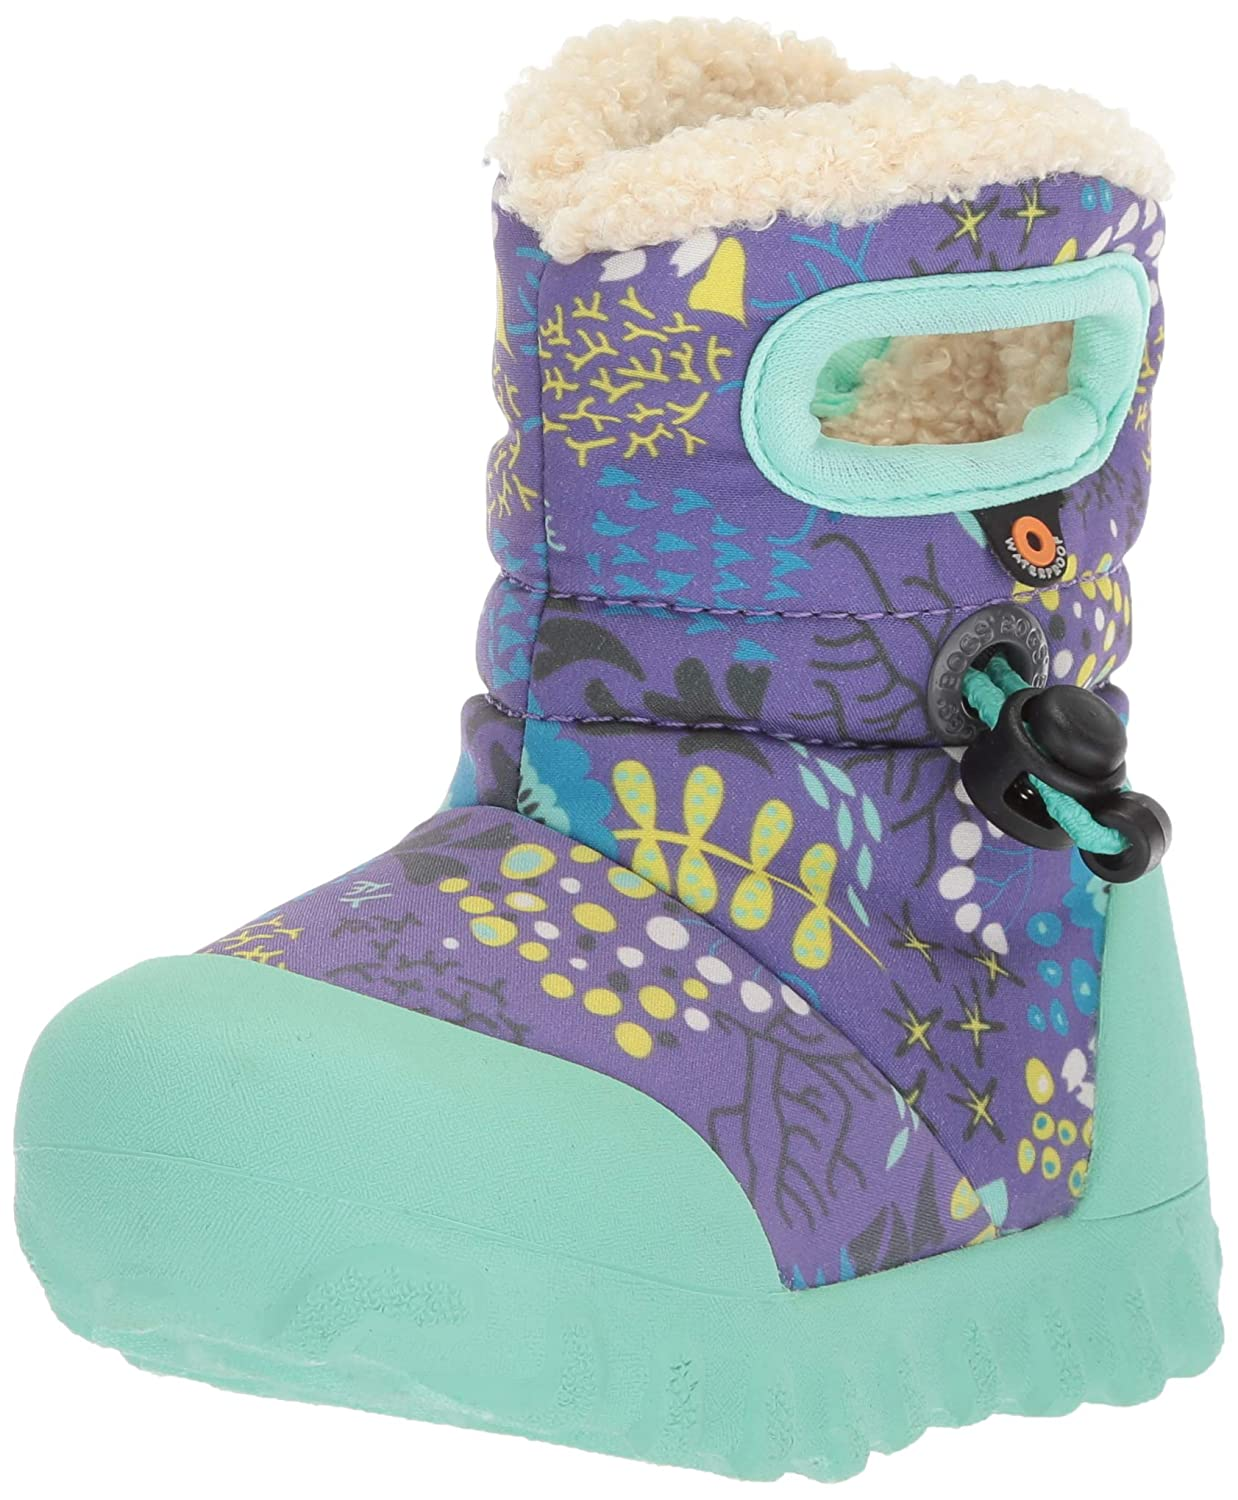 Bogs Kids' B-Moc Waterproof Insulated Toddler Winter Boot